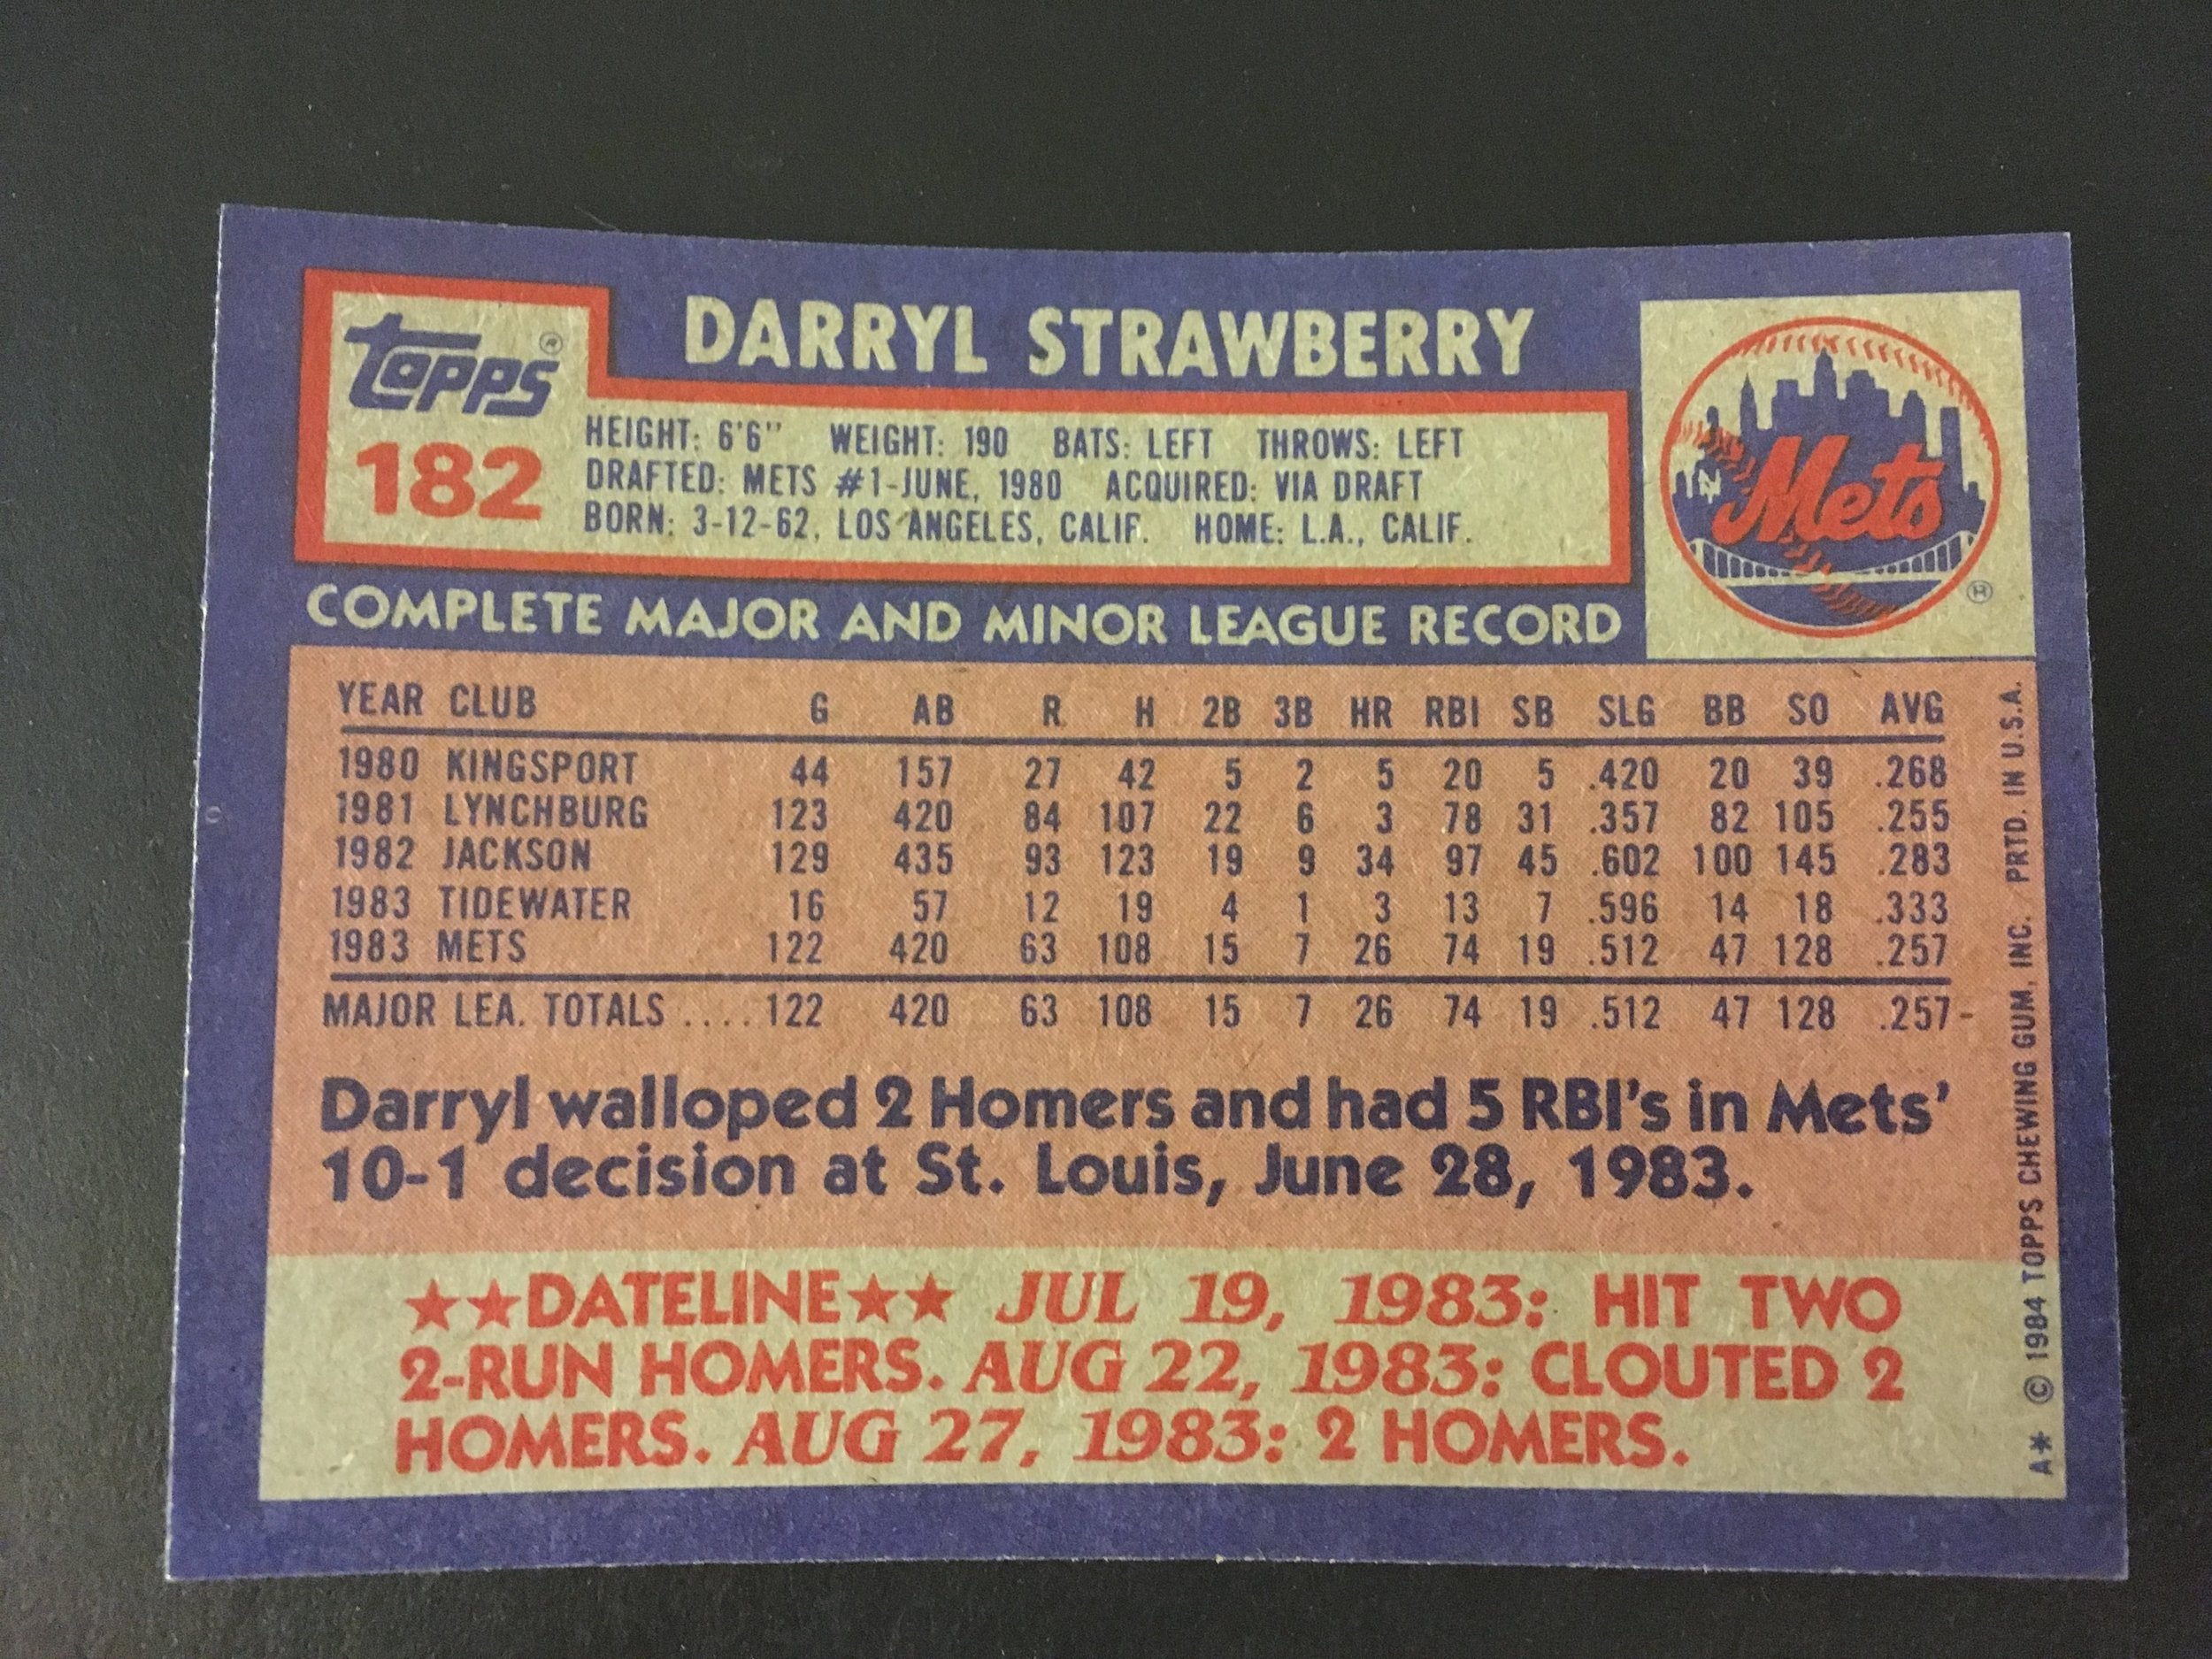 1984-Topps-Darryl-Strawberry-Back.JPG